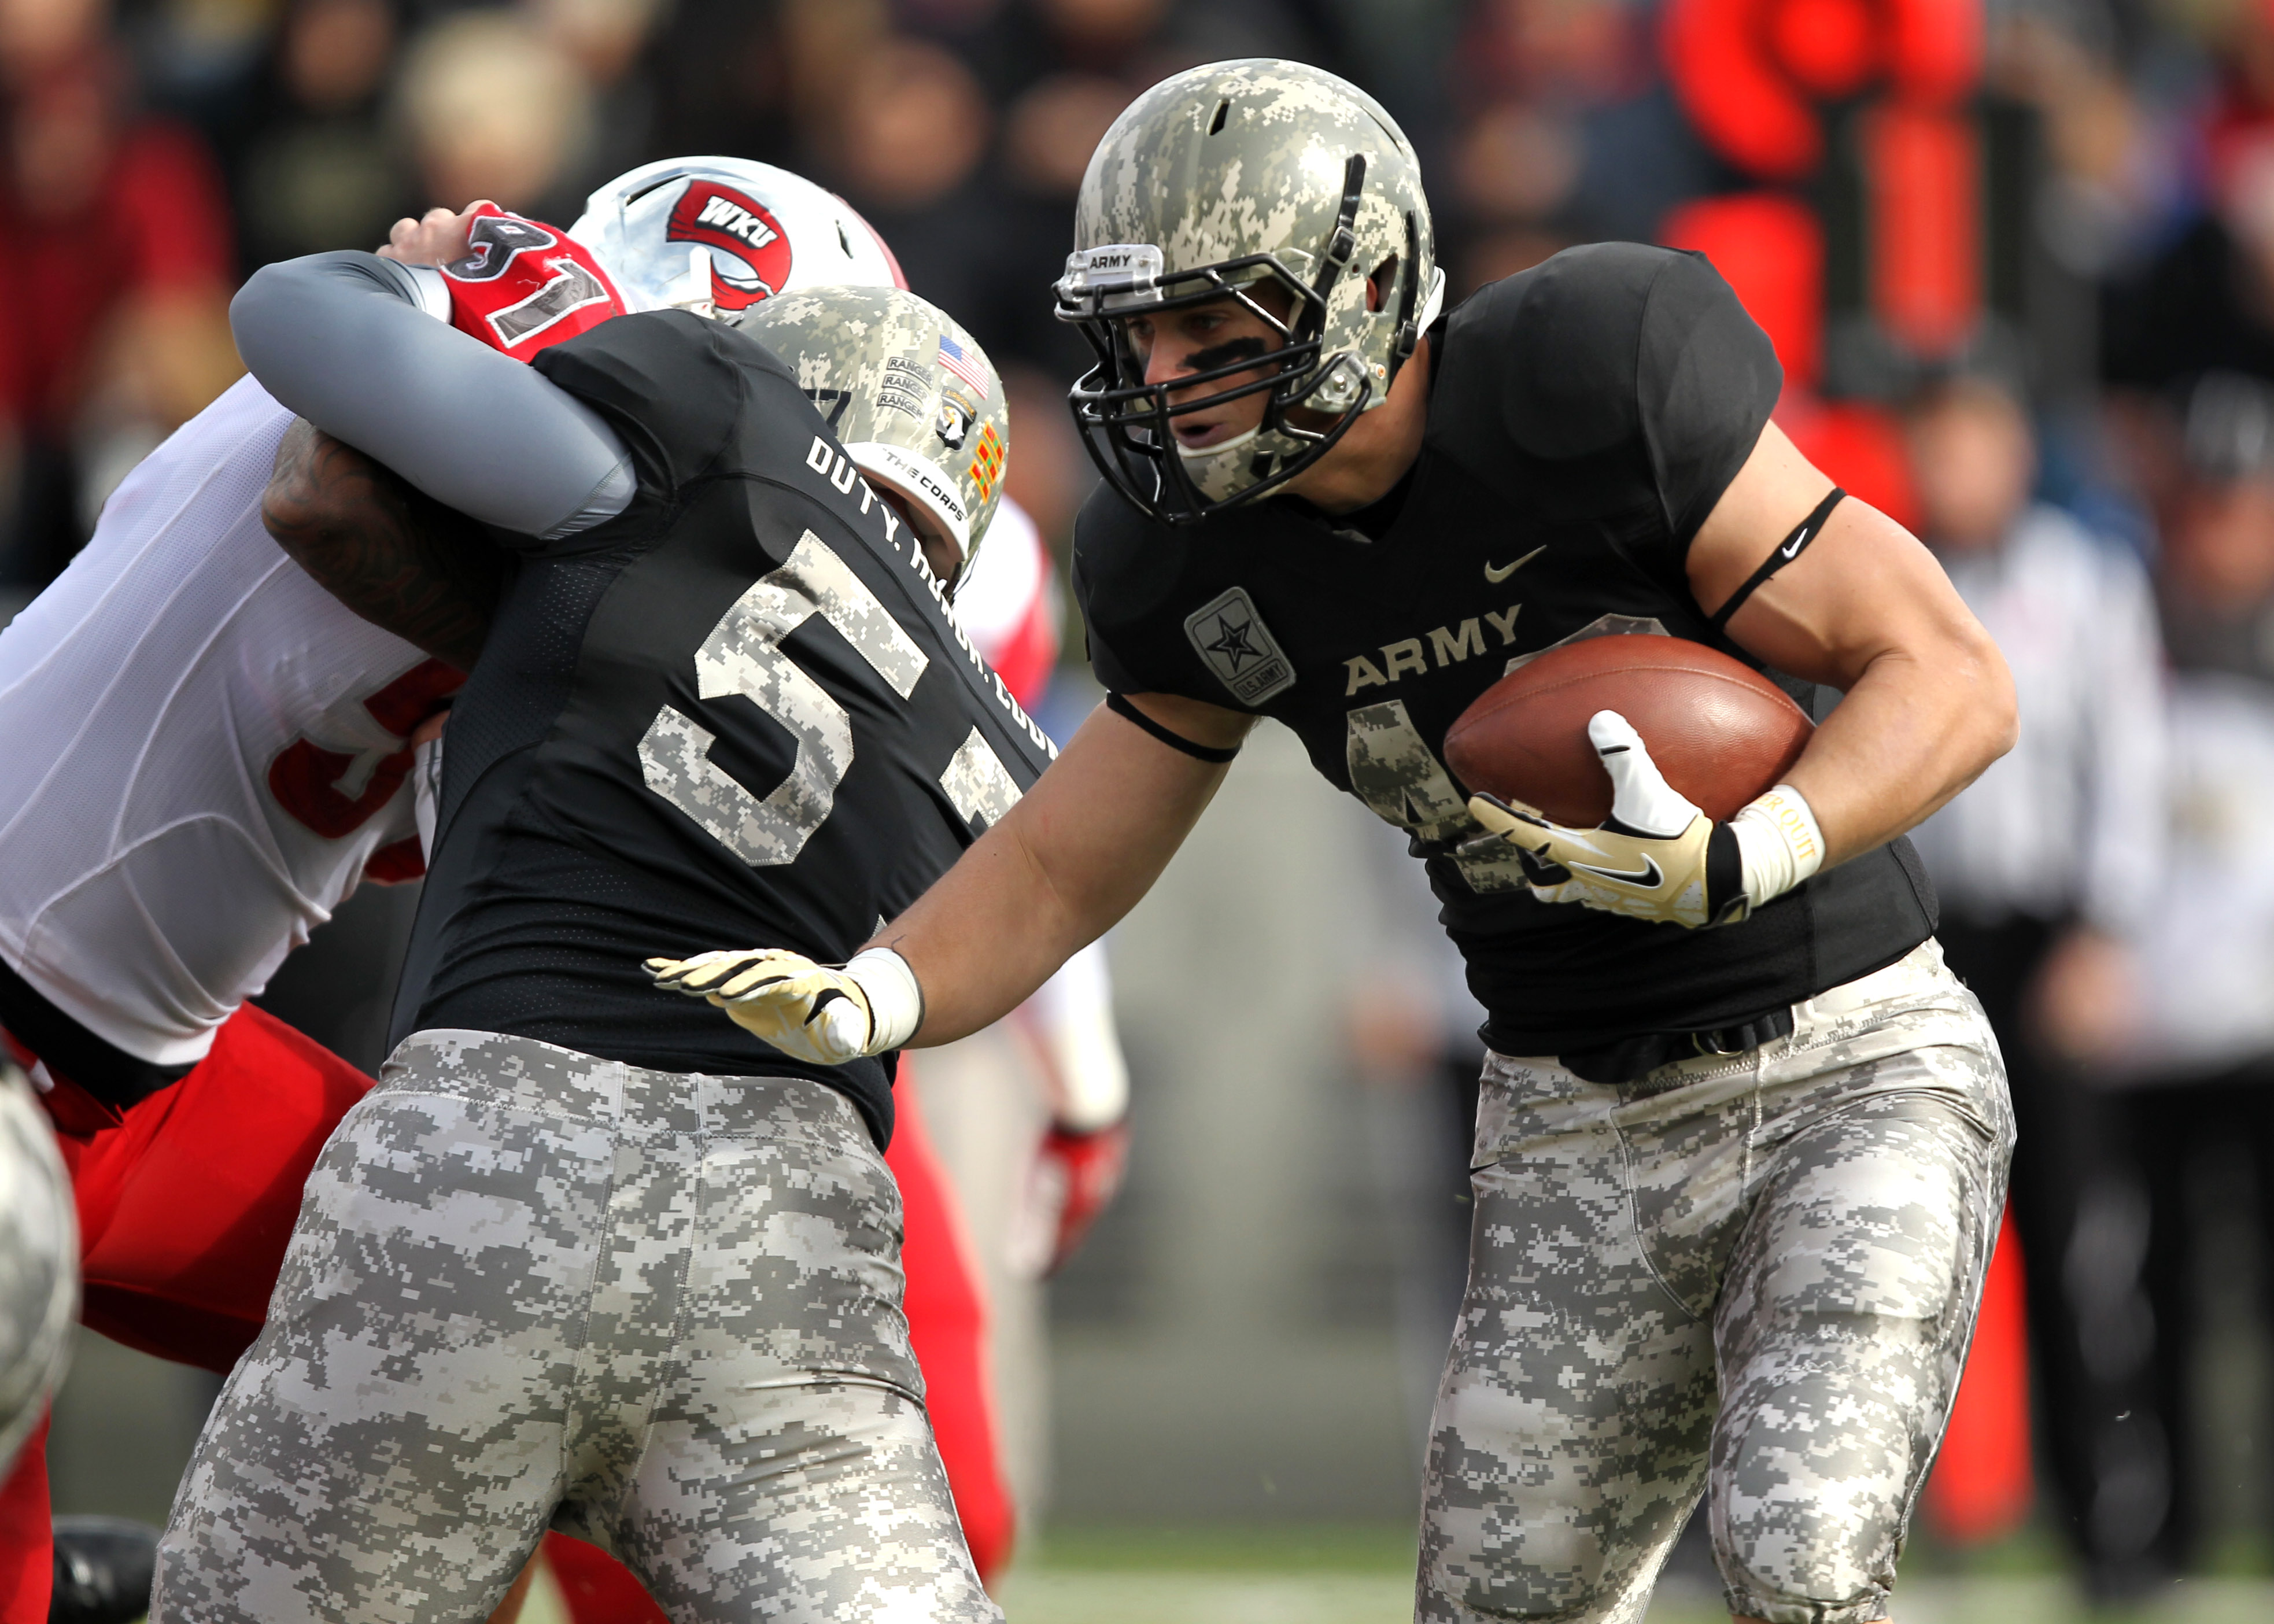 Army's struggles continue in late loss to WKU | Danny Wild